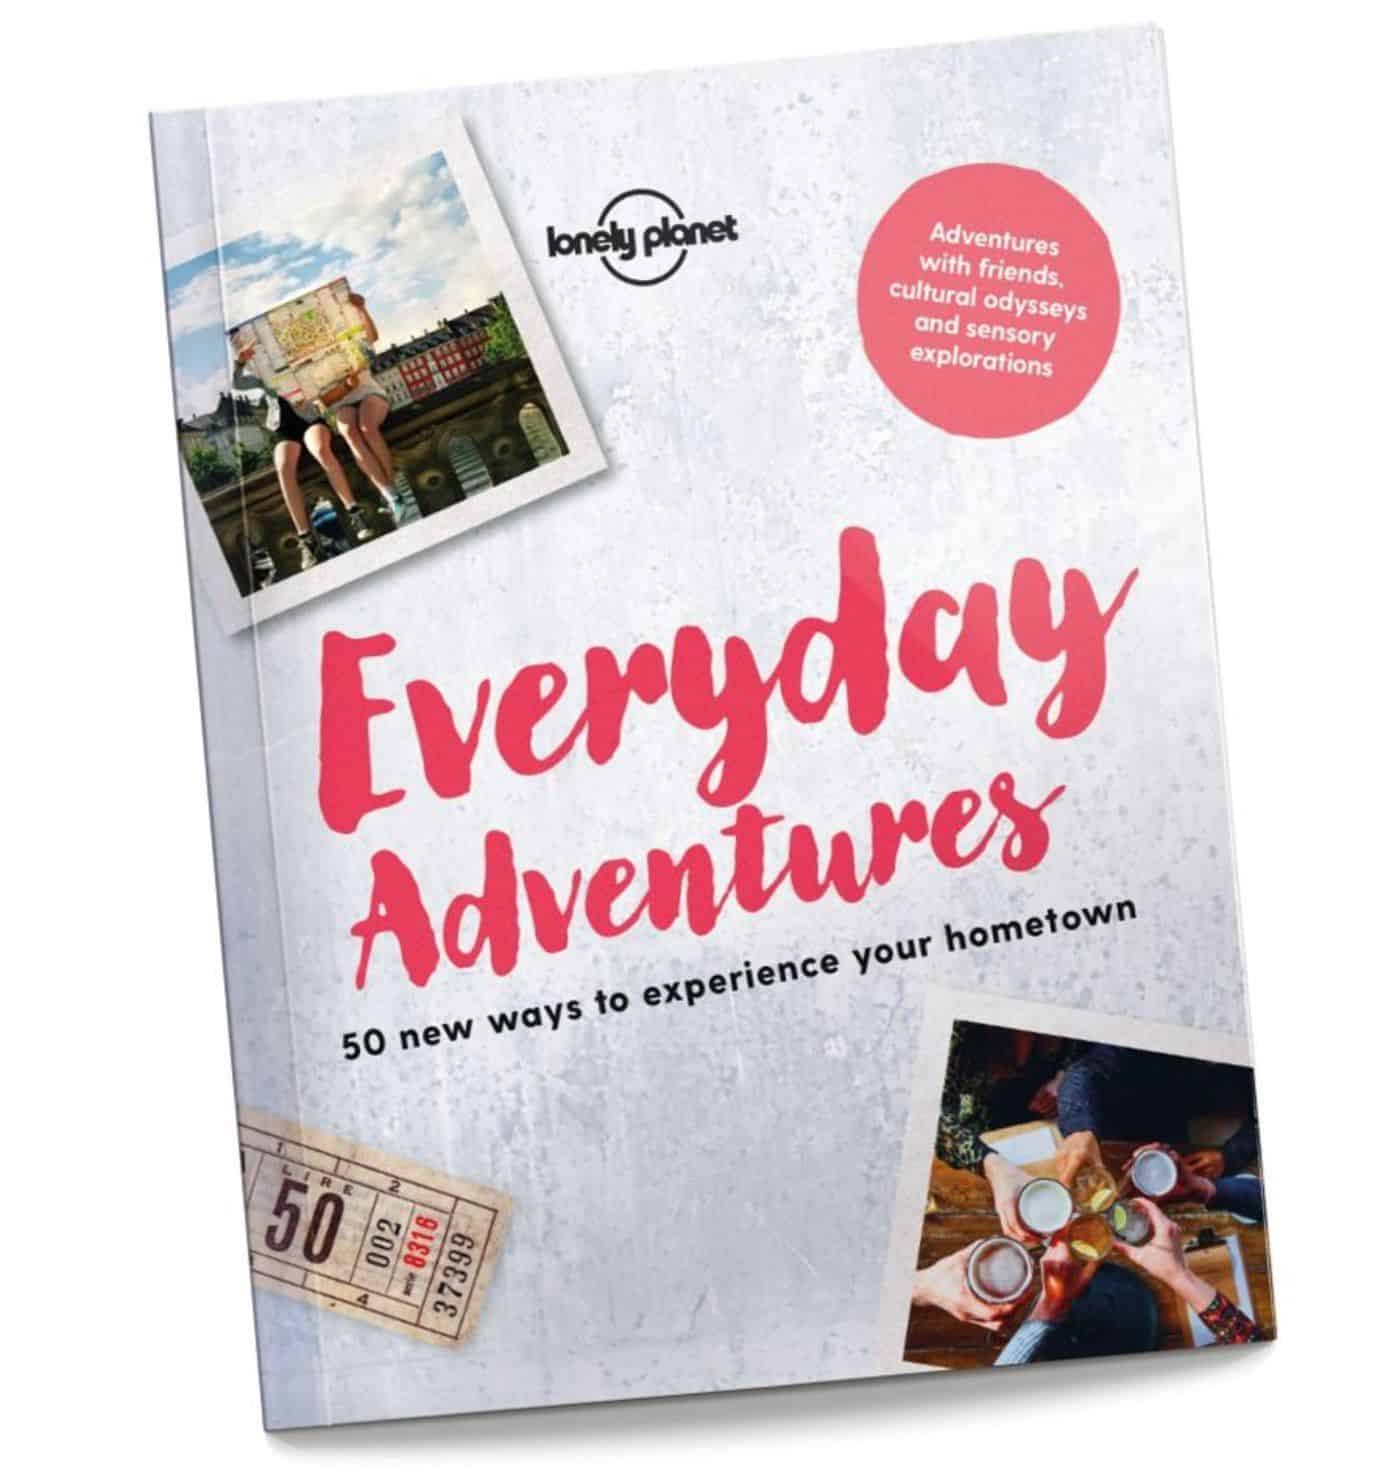 2020 Travelers Gift Guide - Everyday Adventures